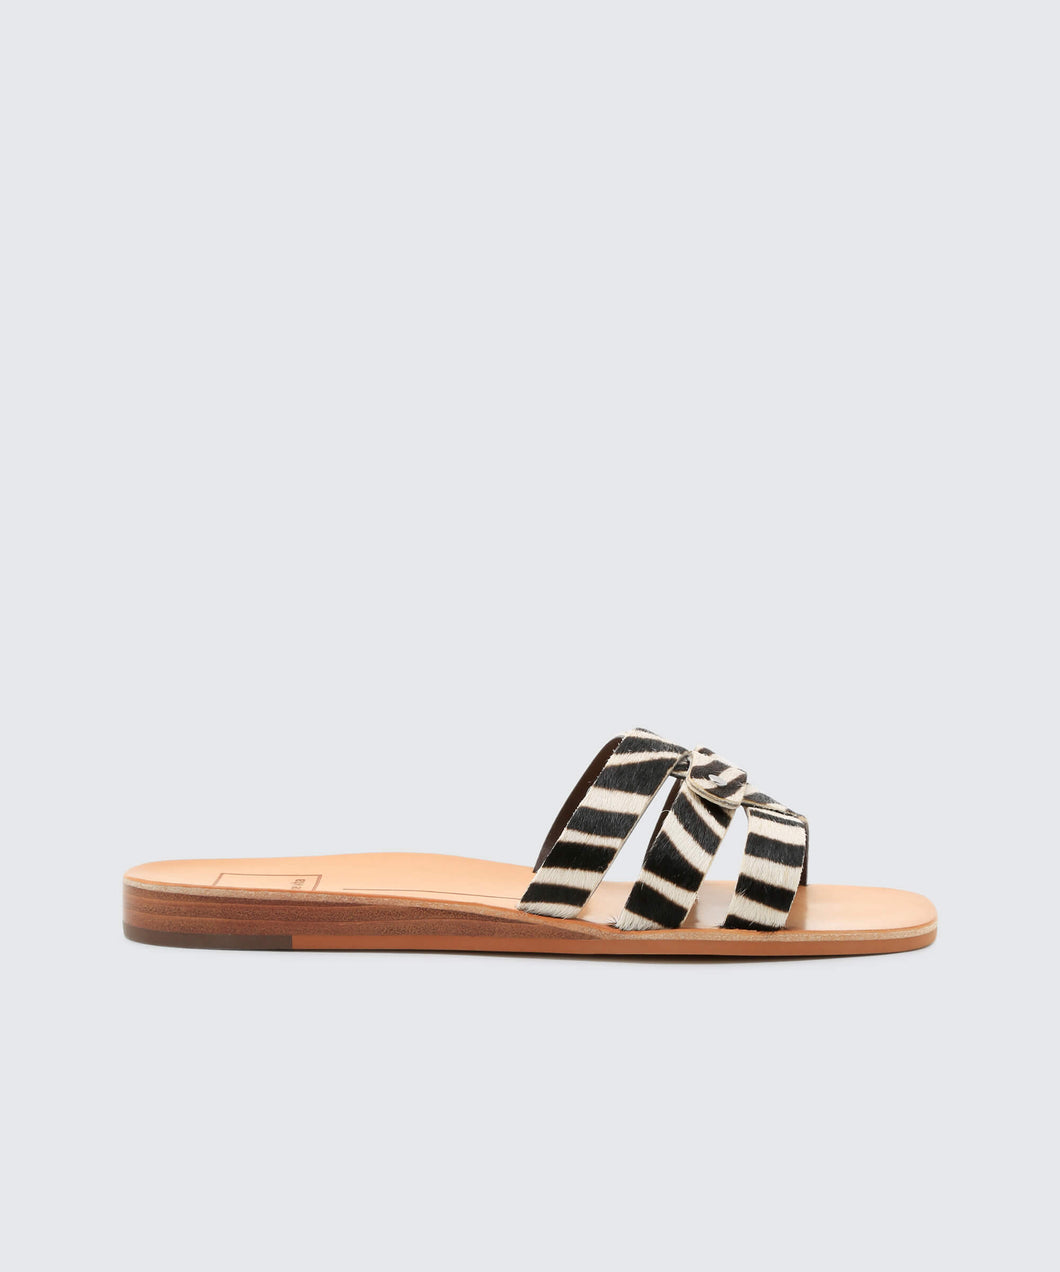 CAIT SANDALS IN ZEBRA -   Dolce Vita